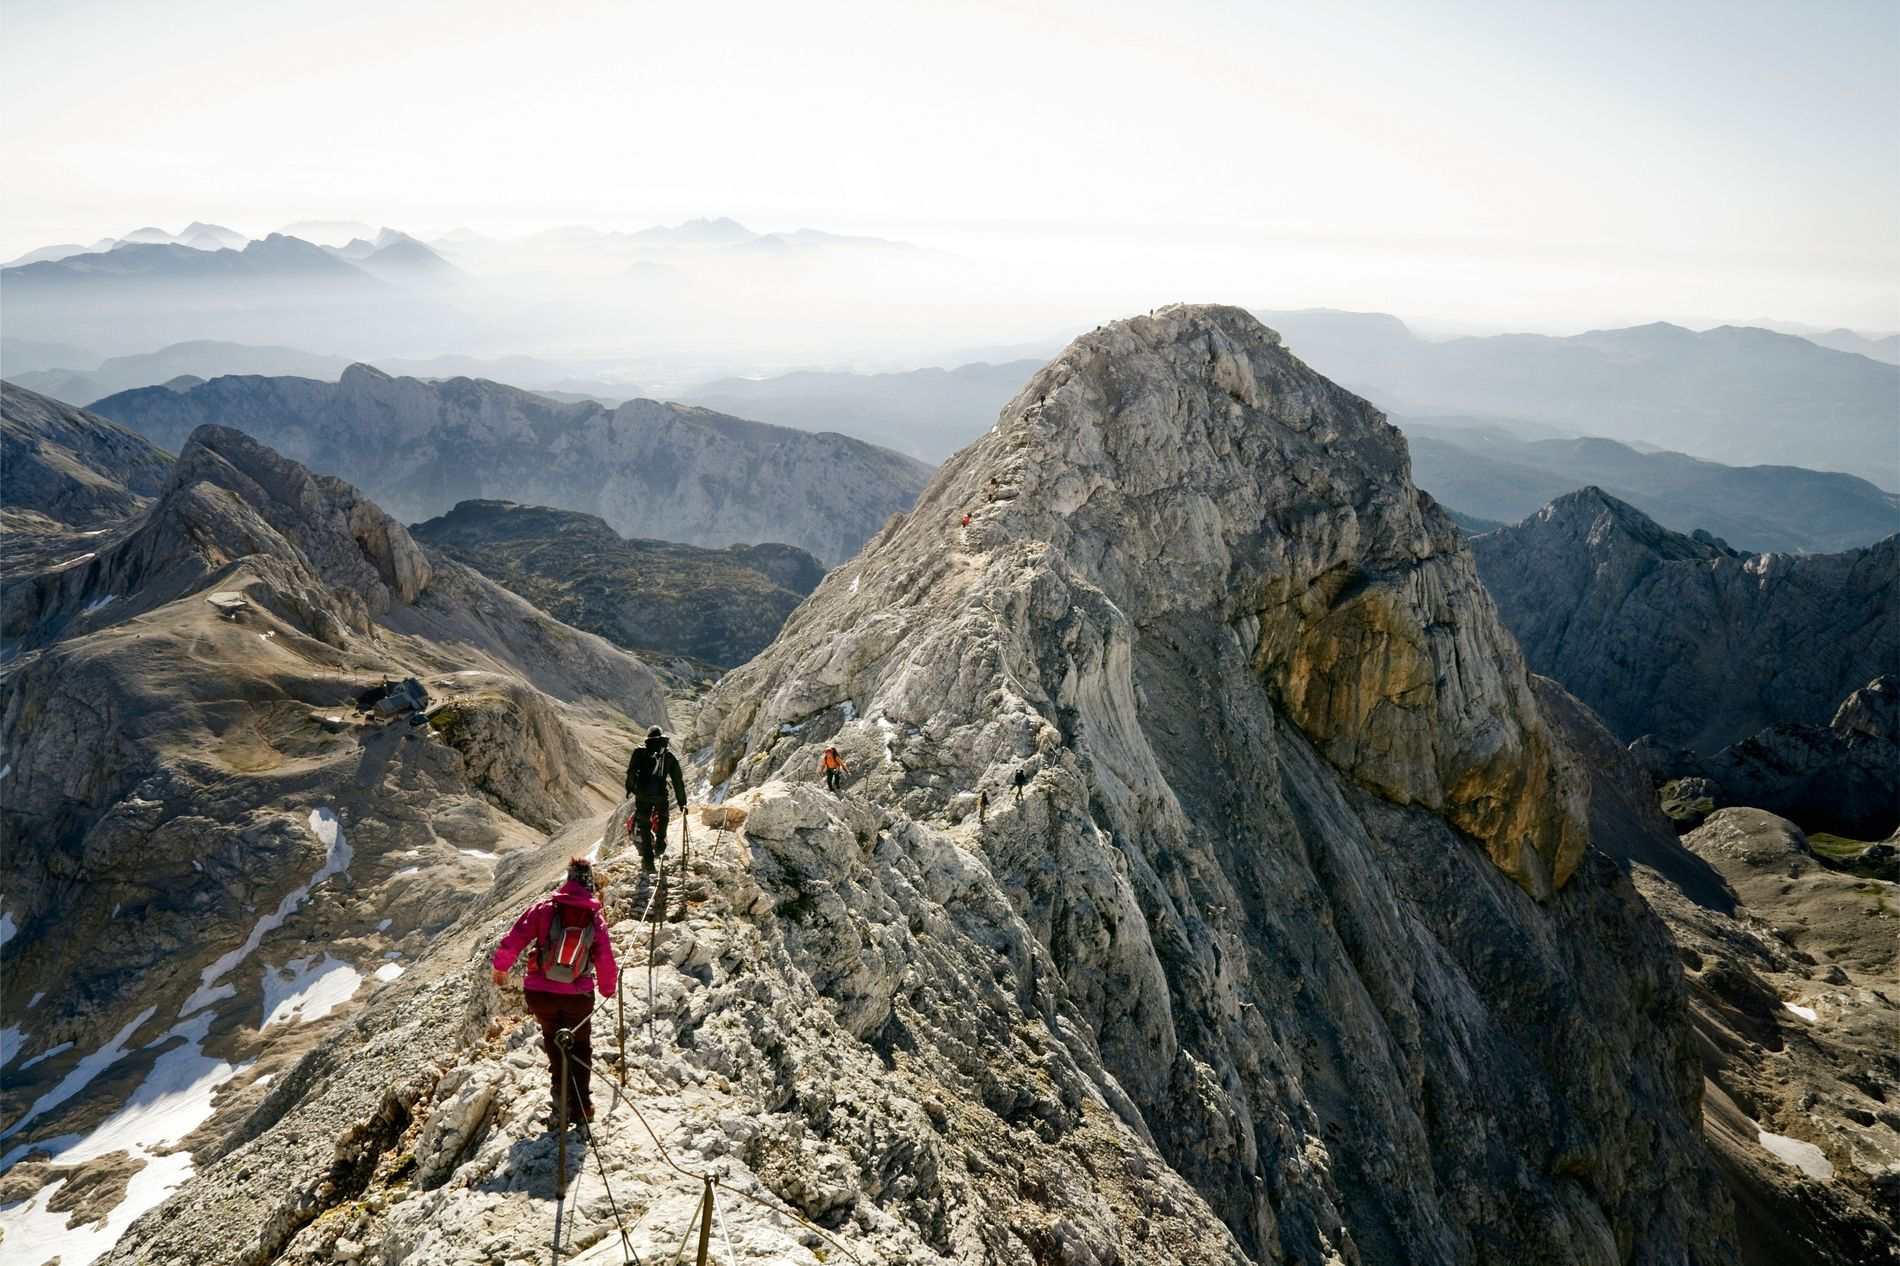 Hikers on Mount Triglav, Slovenia.